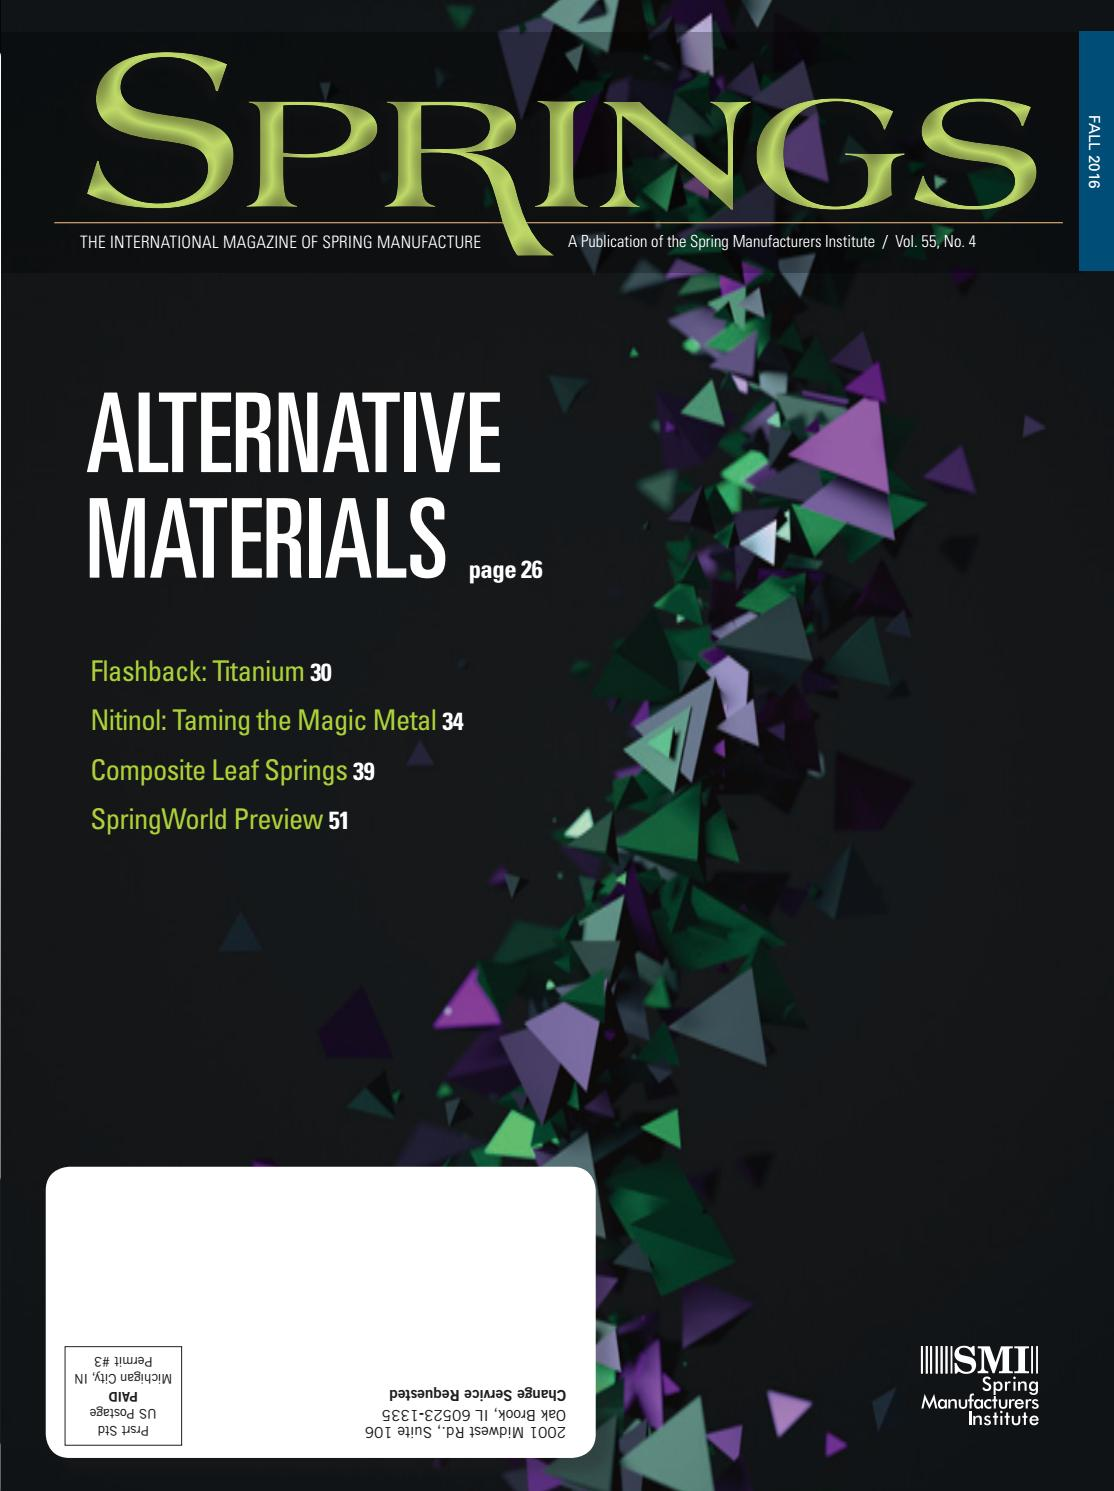 Springs fall 2016 vol 55 no4 by Spring Manufacturers